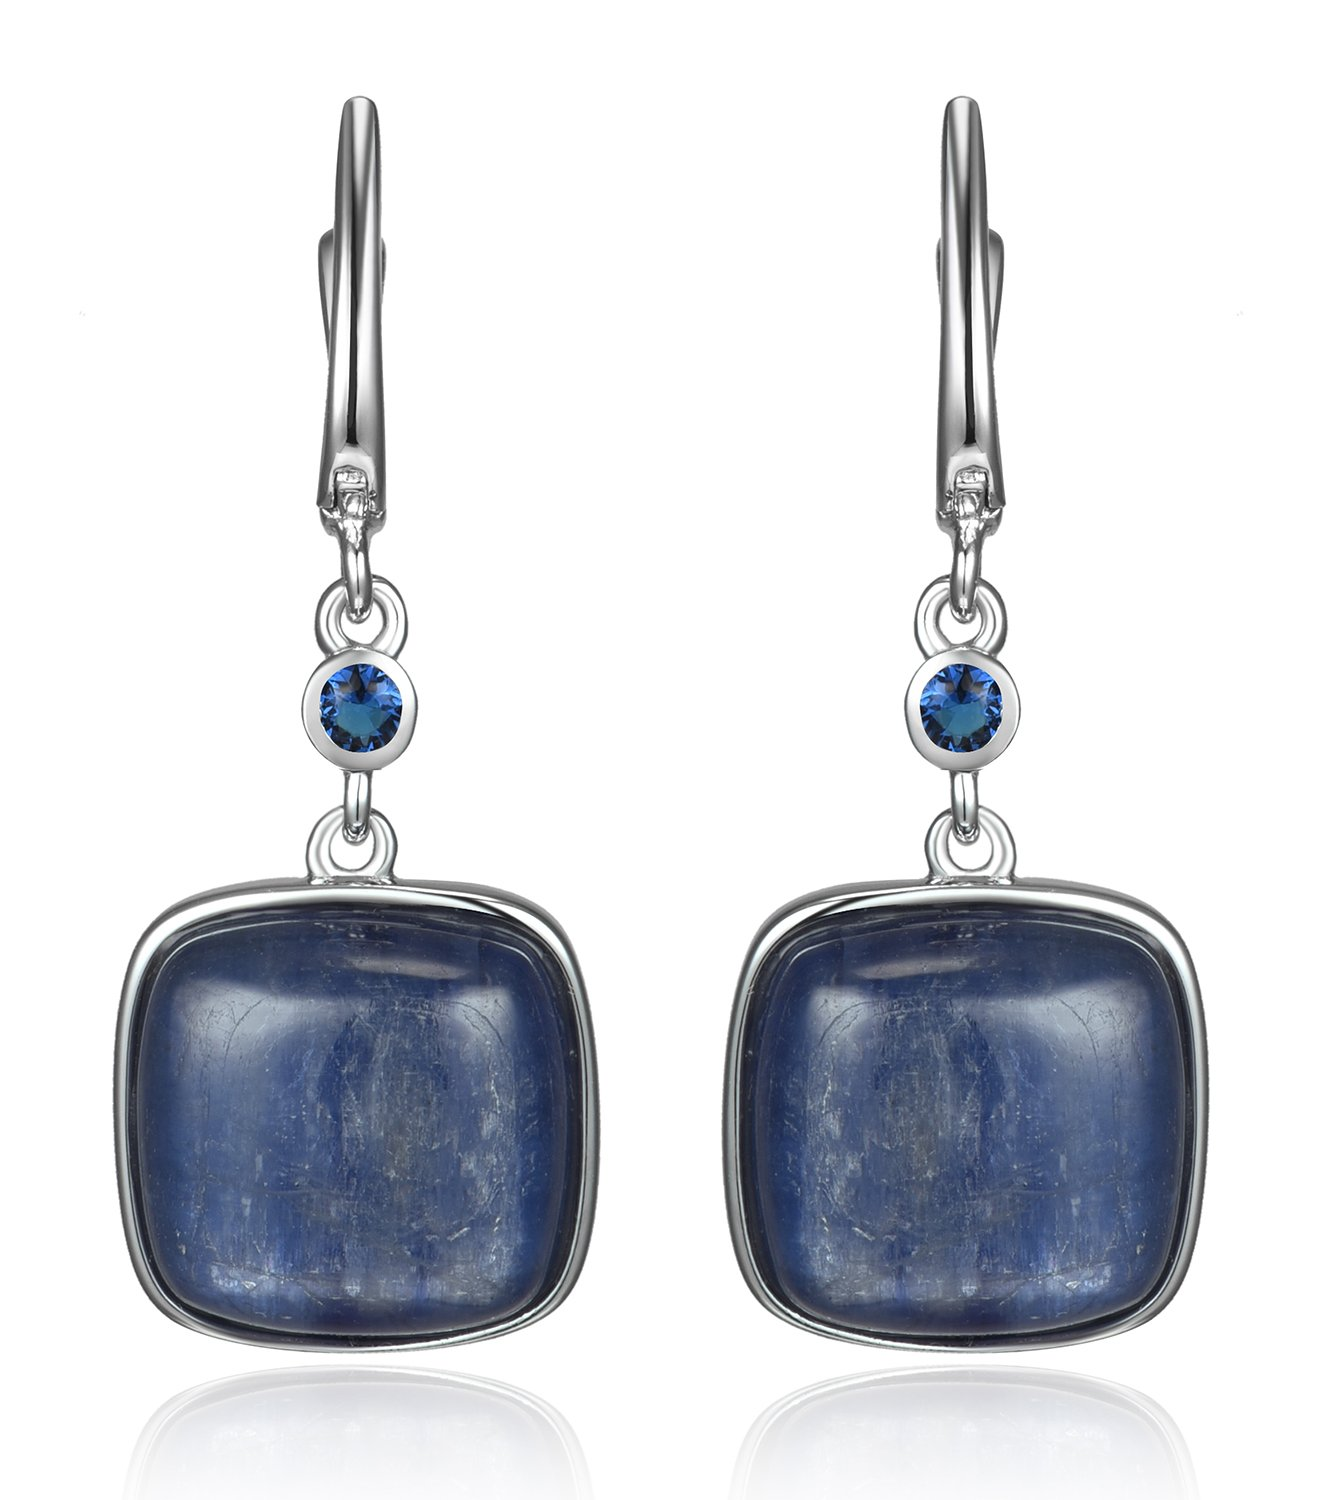 Lanfeny Rhodium Plated 925 Sterling Silver Dangle Antique Earrings with Kaynite Gemstones and Sapphire CZ